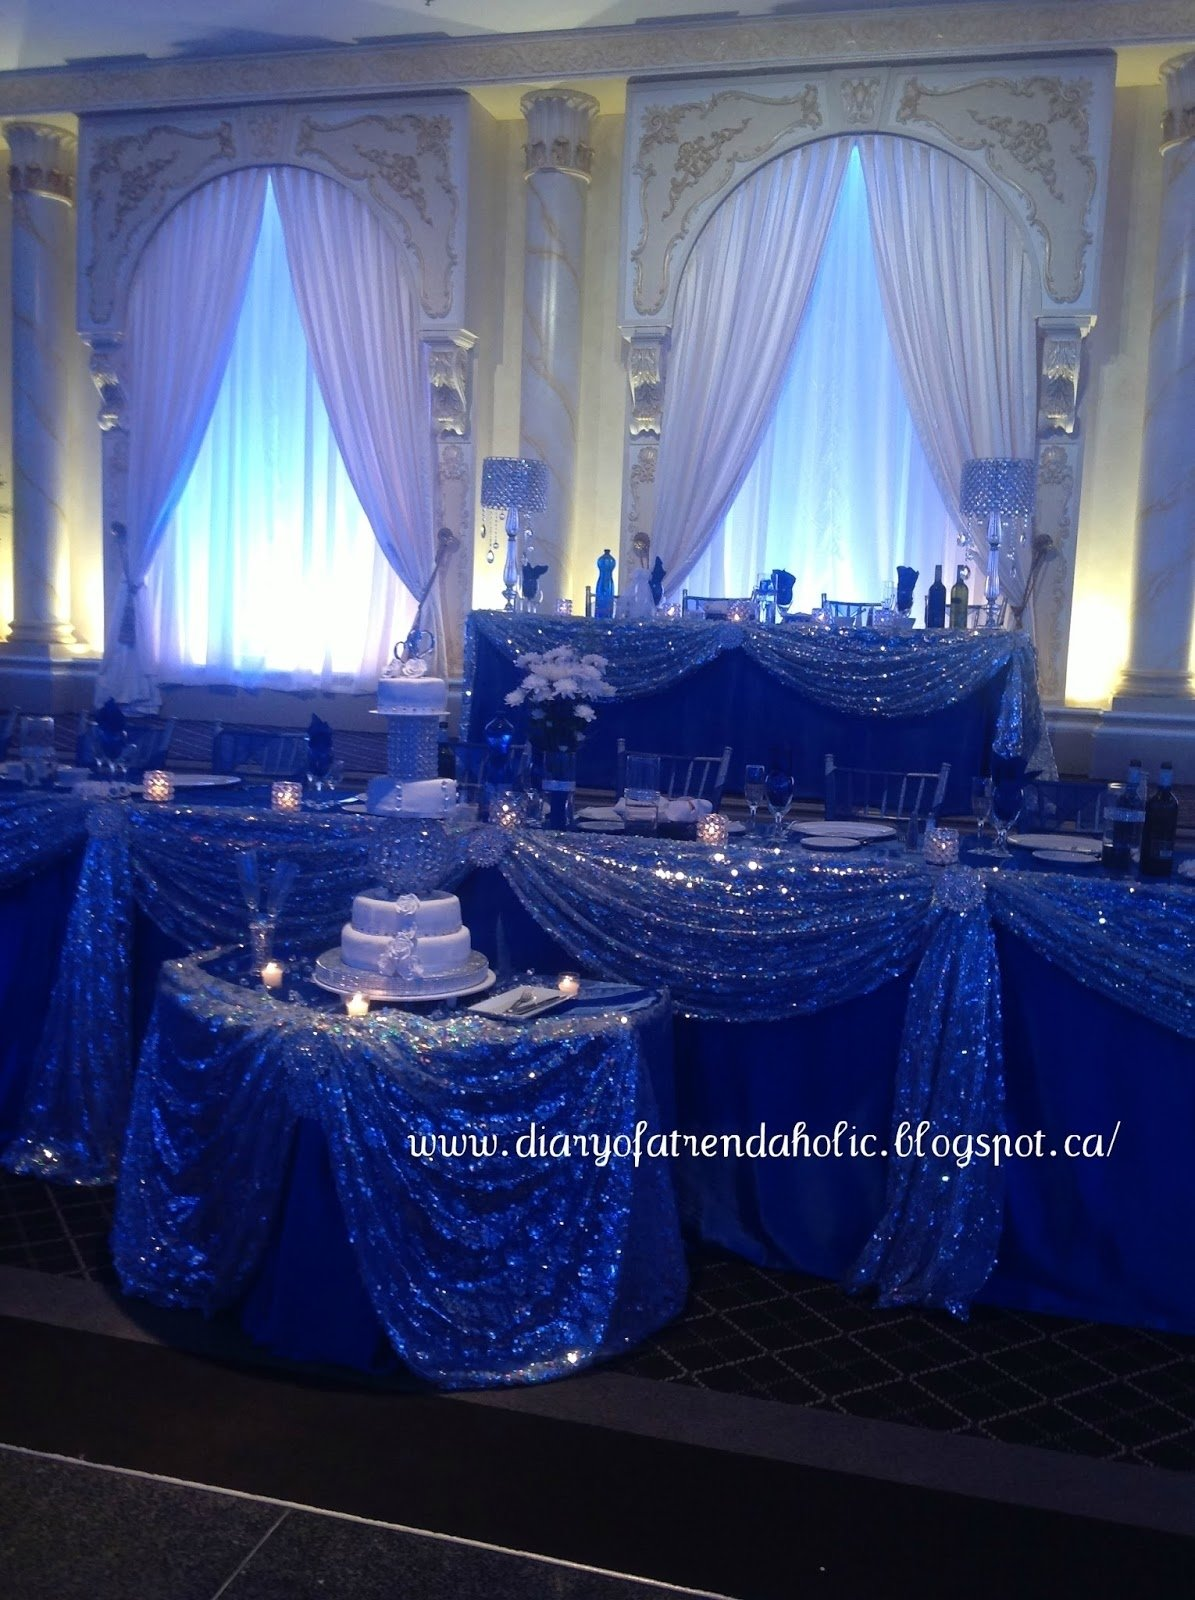 10 Unique Blue And Silver Wedding Ideas diary of a trendaholic blue and silver wedding 2020